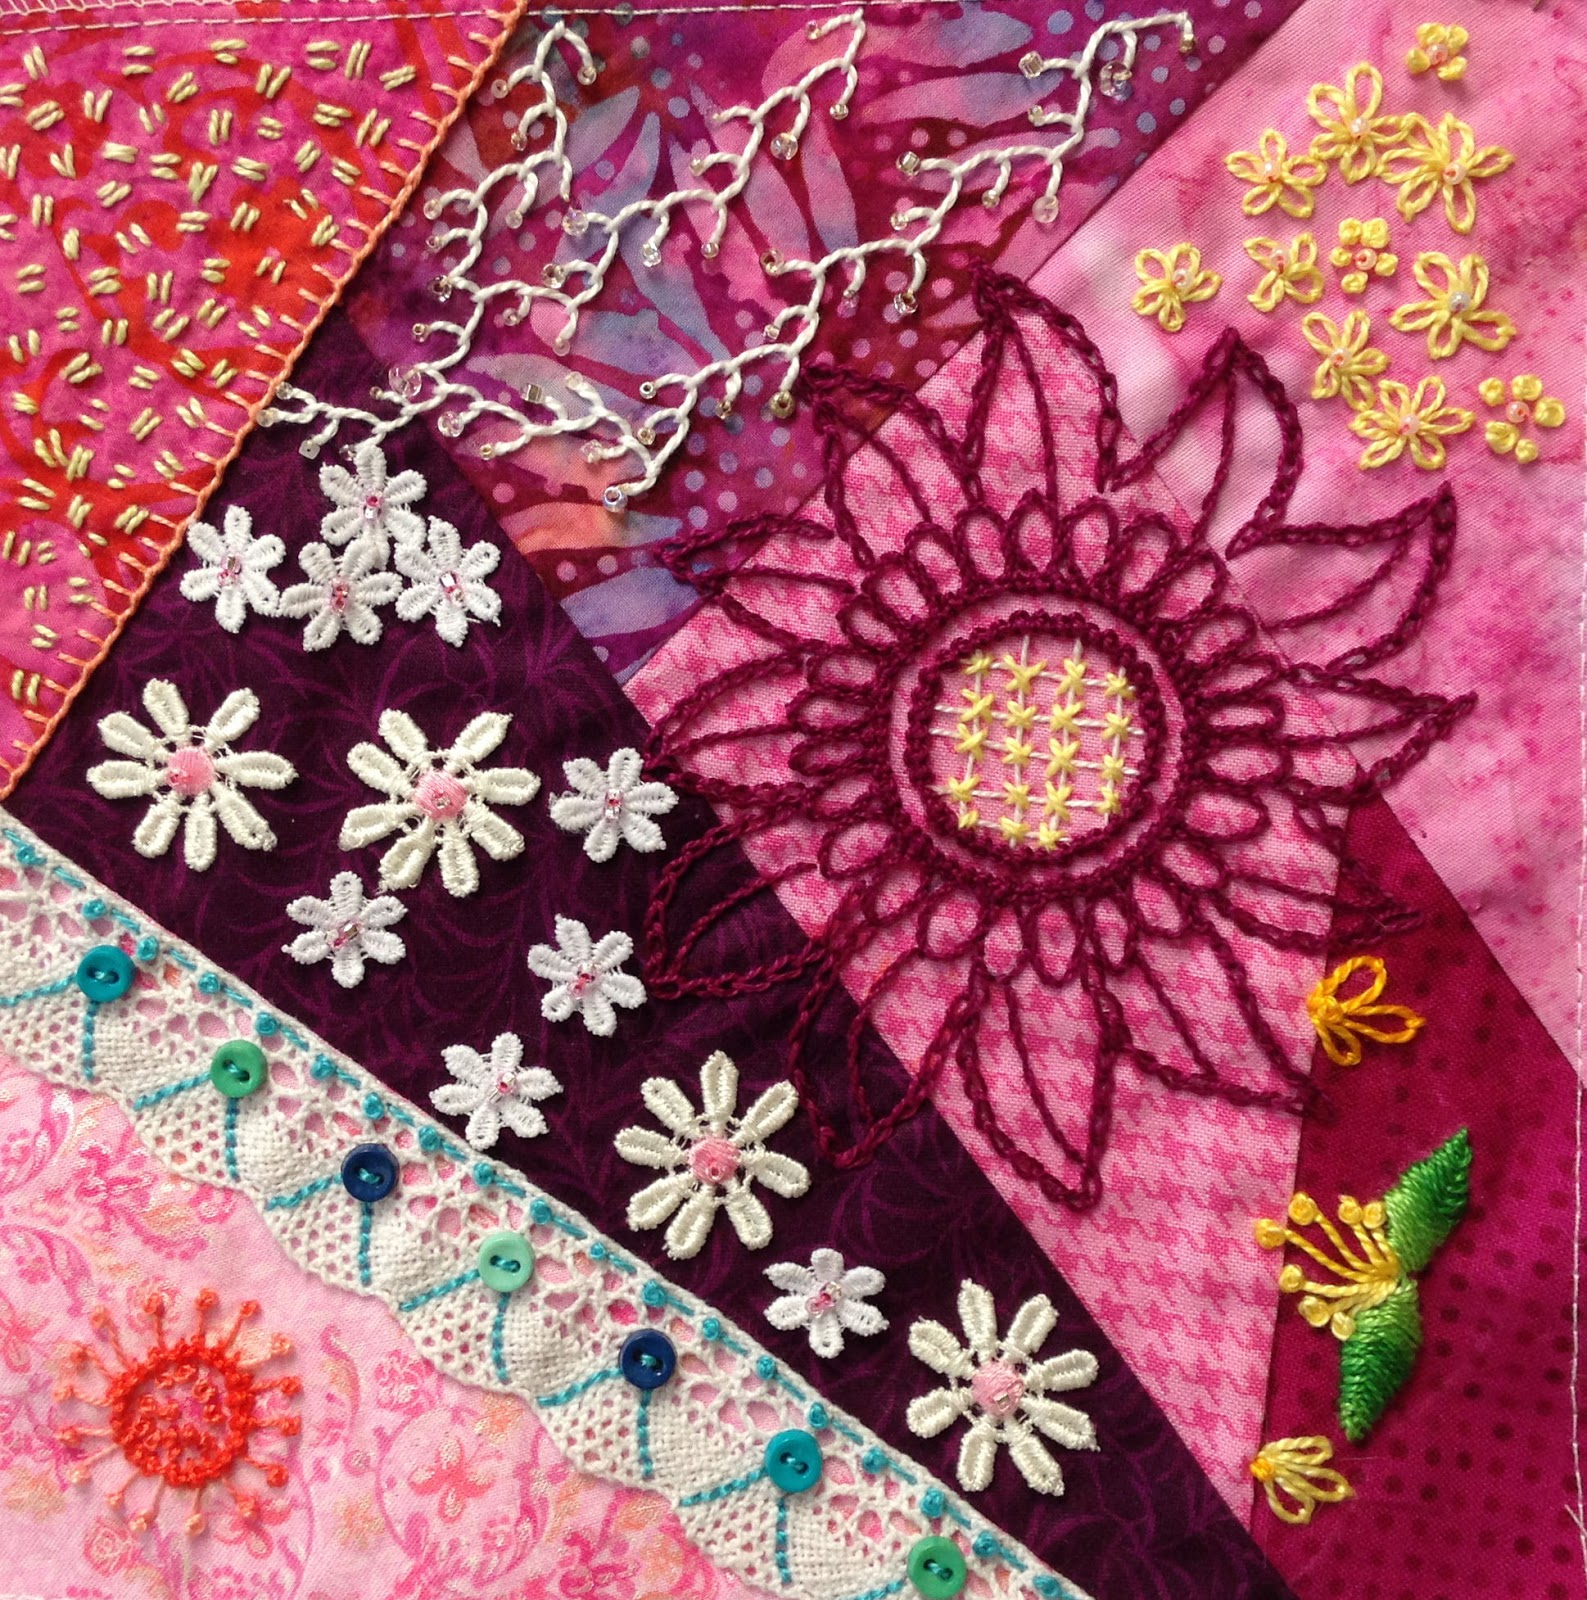 Shop ravelings going crazy with quilt stitches